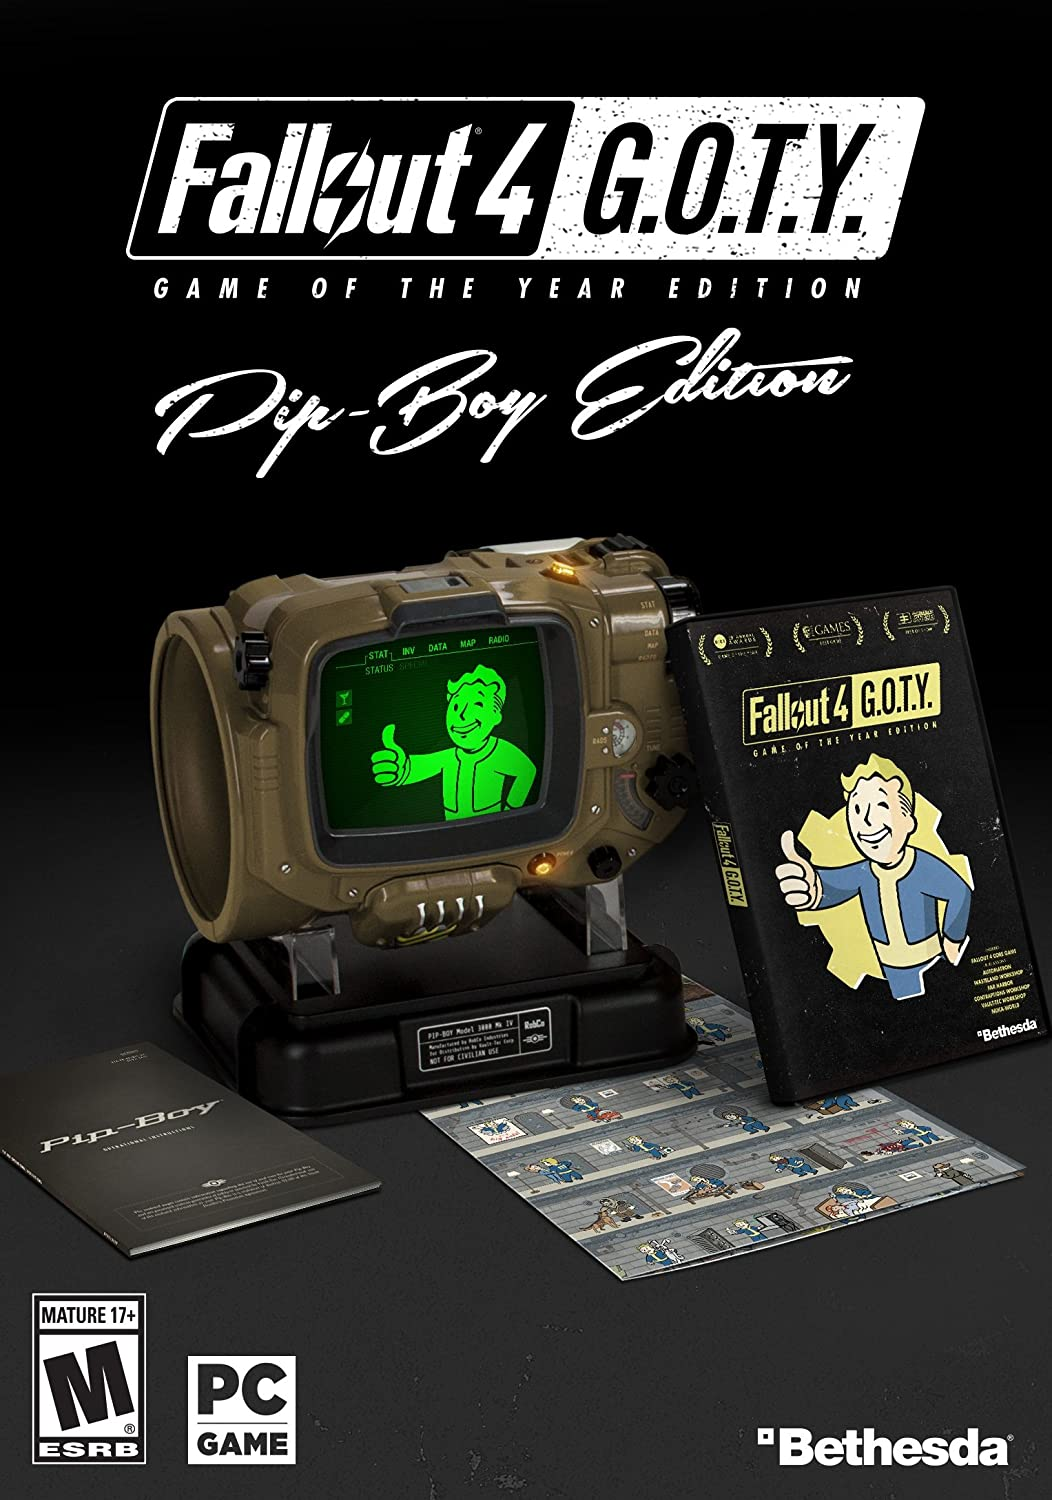 Amazon com: Fallout 4 Game of The Year Pip-Boy Edition - PC